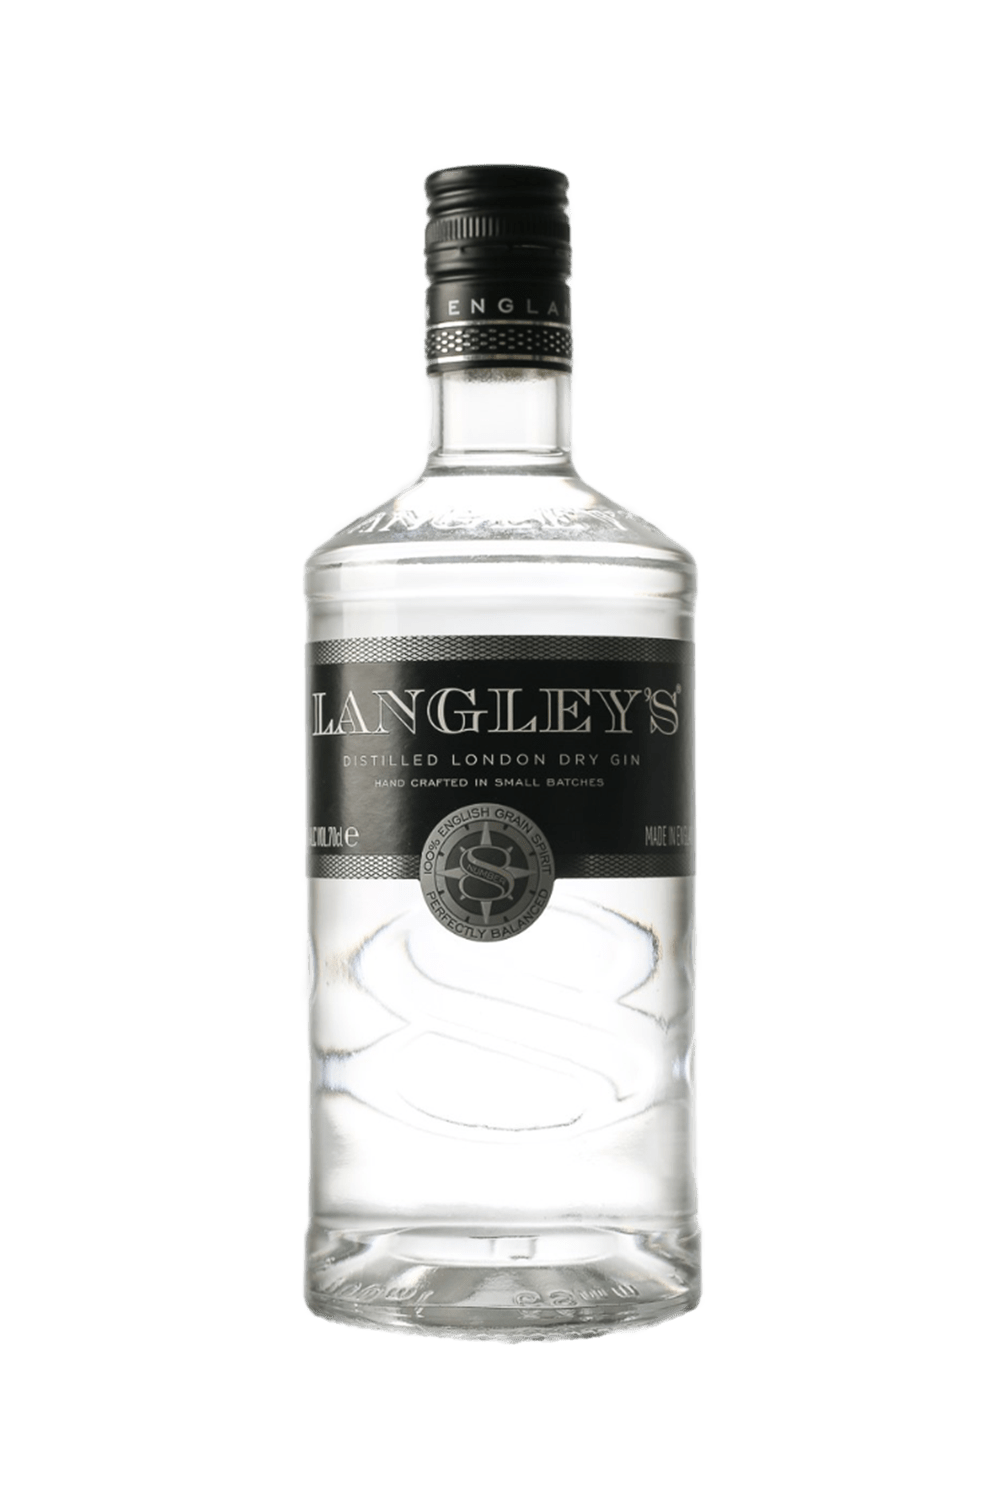 Langley's No.8 London Dry Gin